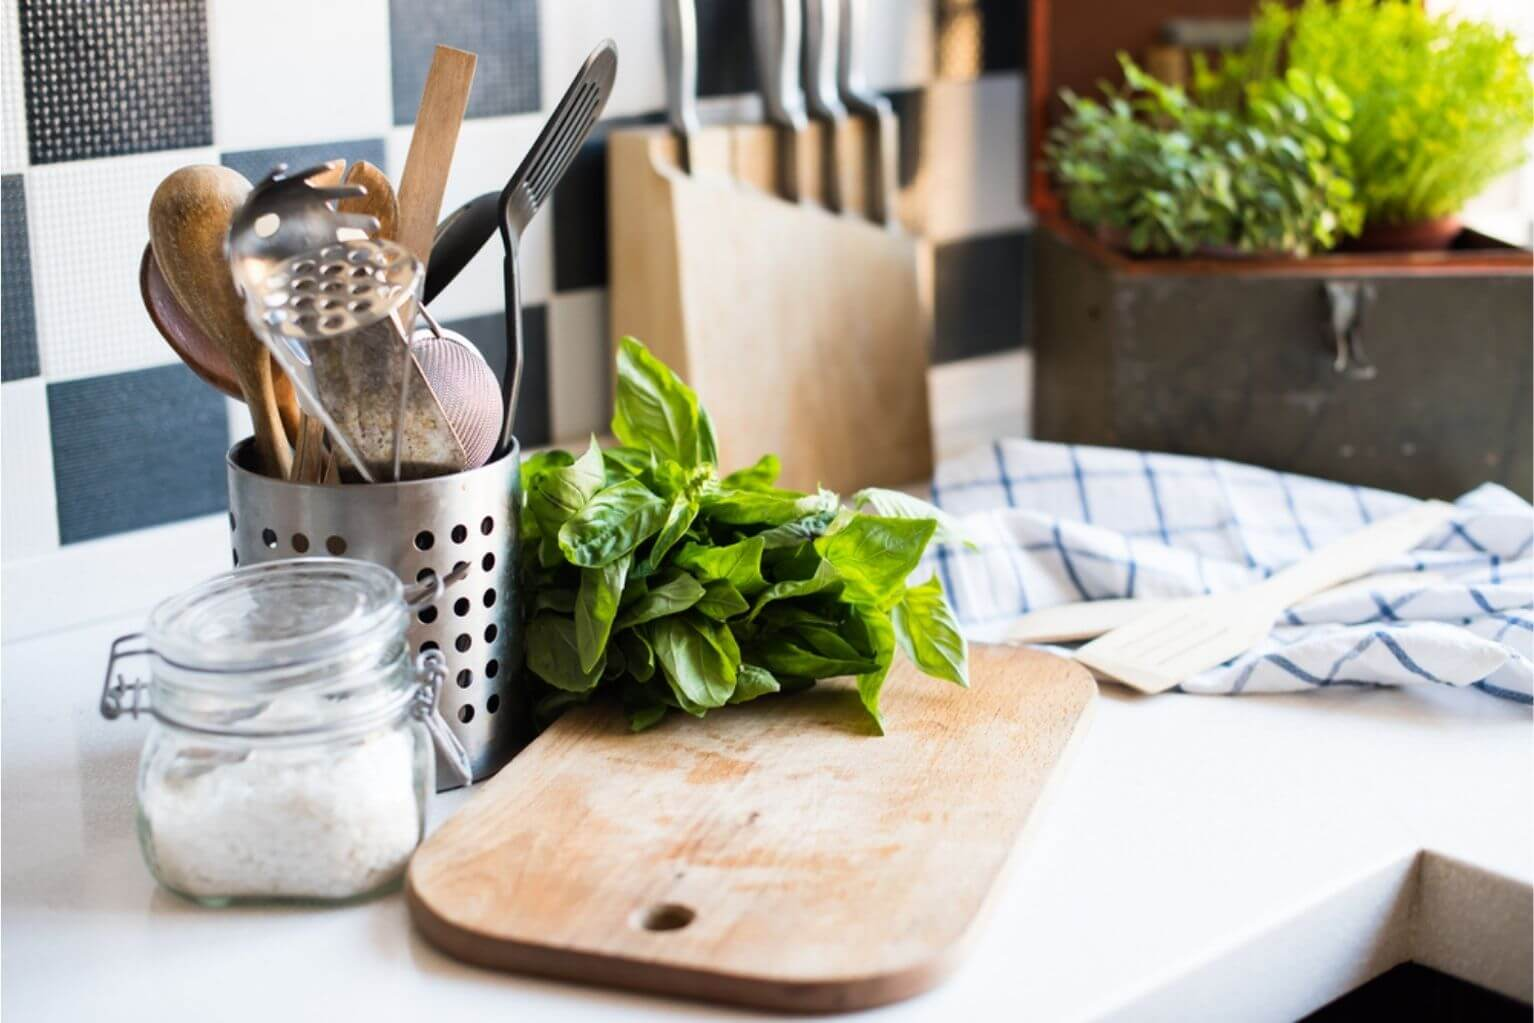 Salt and basil next to kitchen utensils and a cutting board on a white kitchen countertop